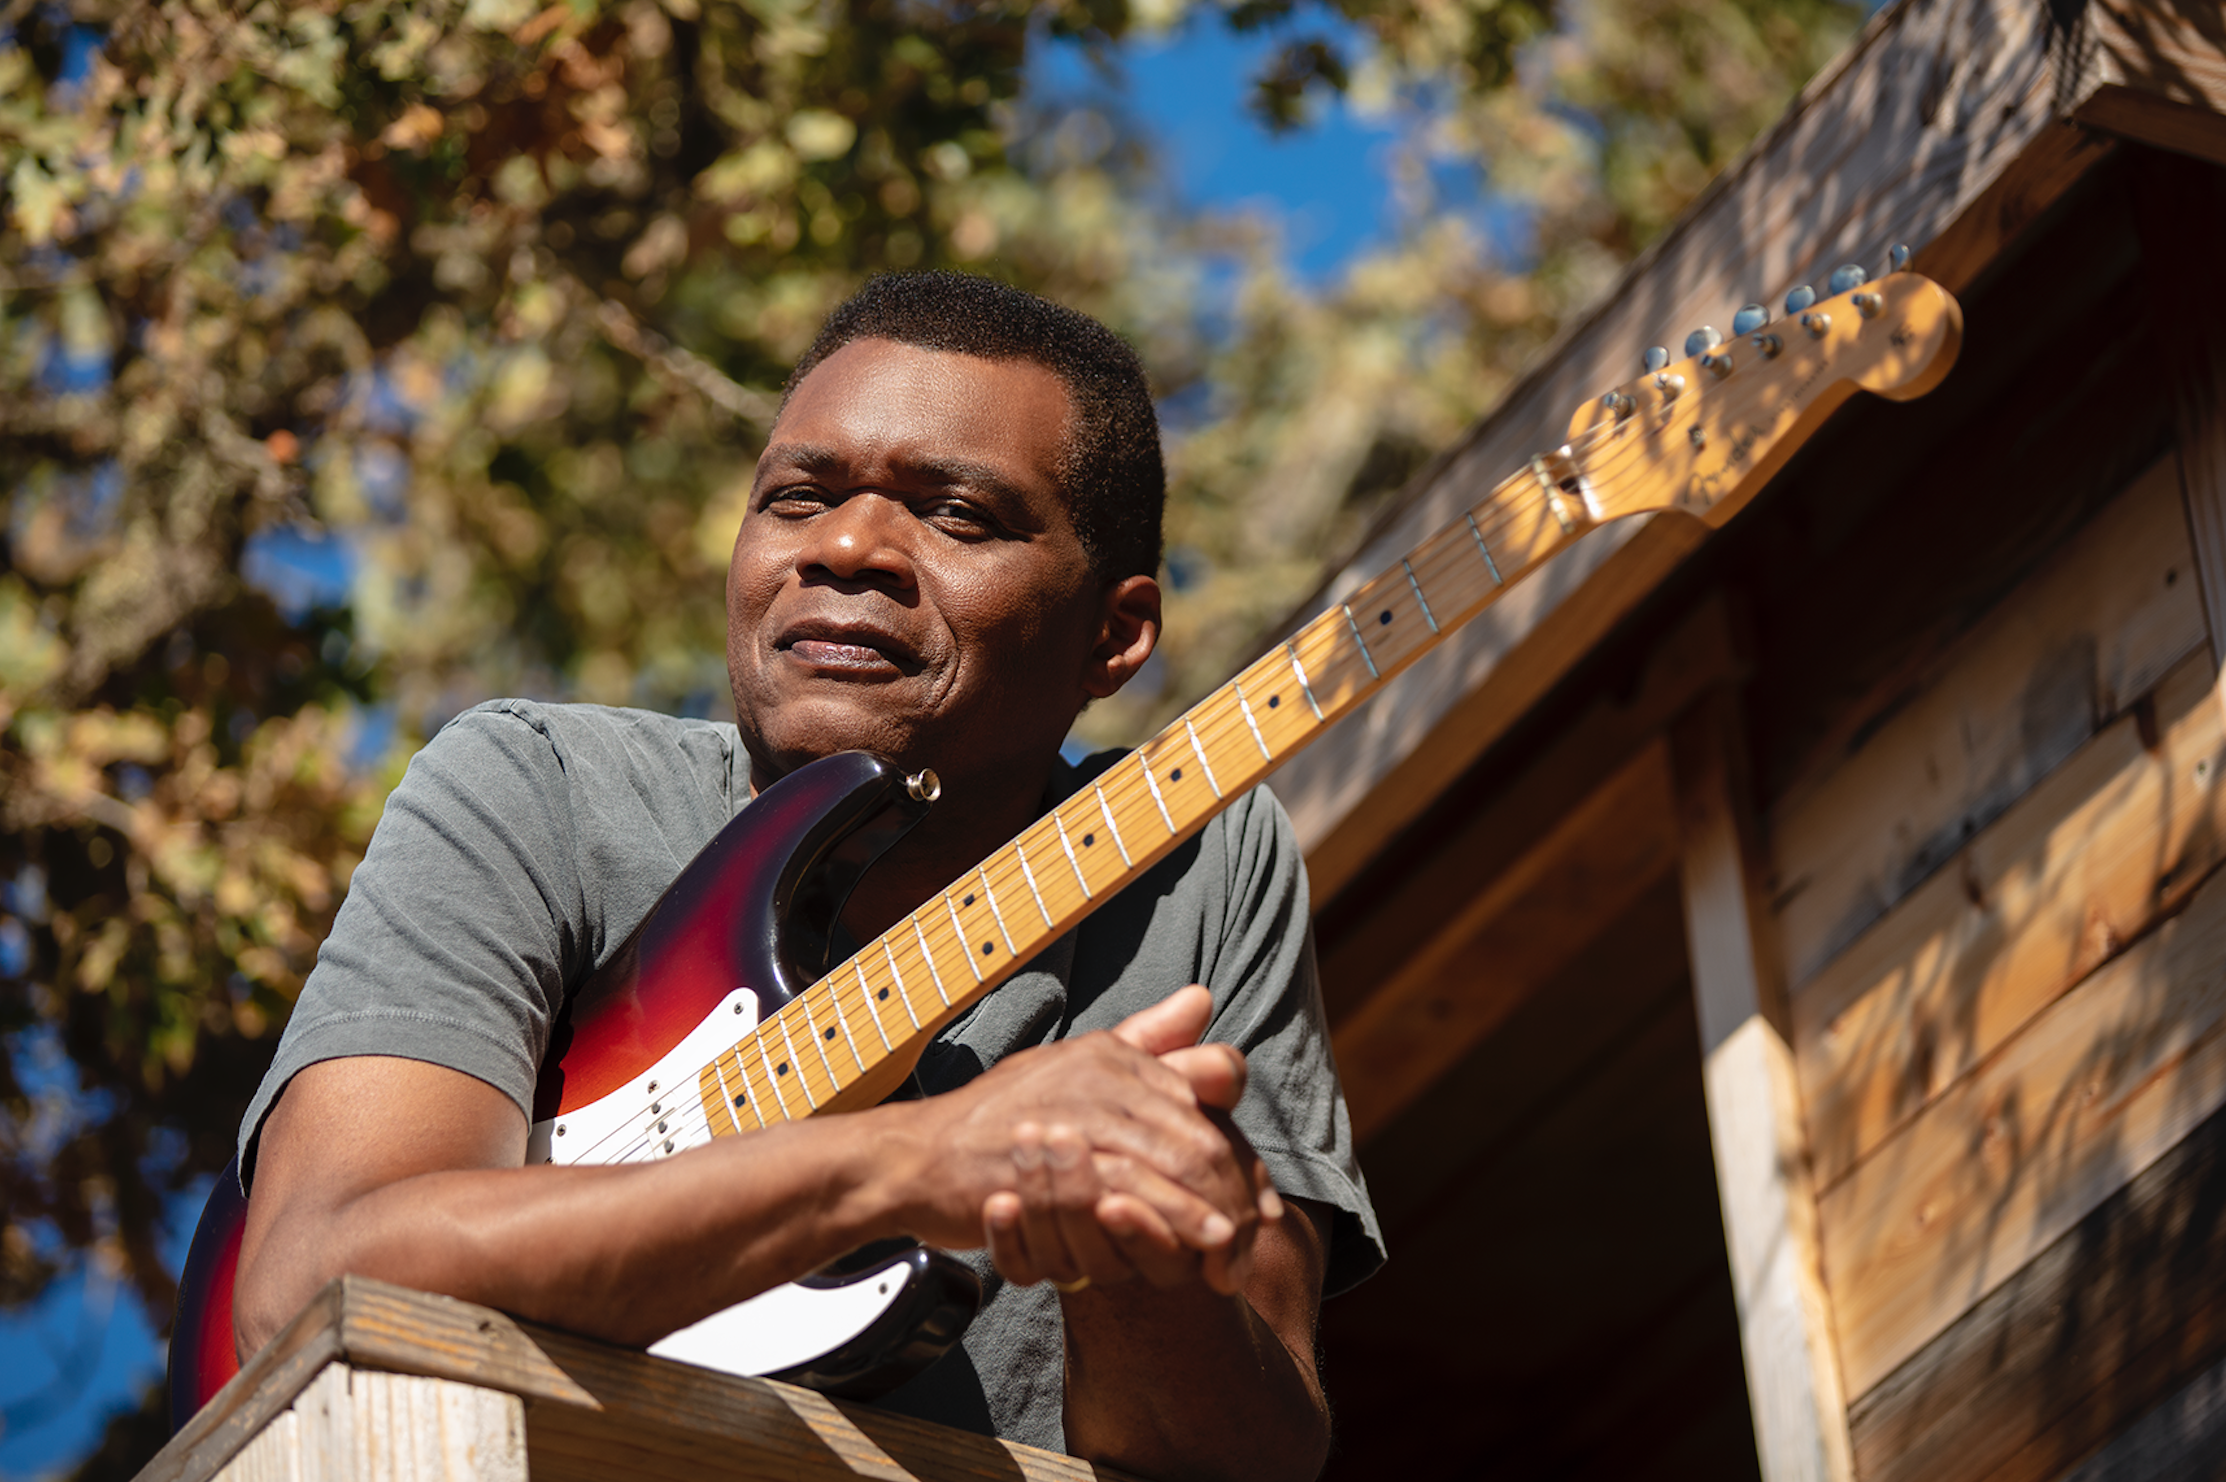 Robert Cray Remembers Tony Joe White in New Song 'To Be With You'